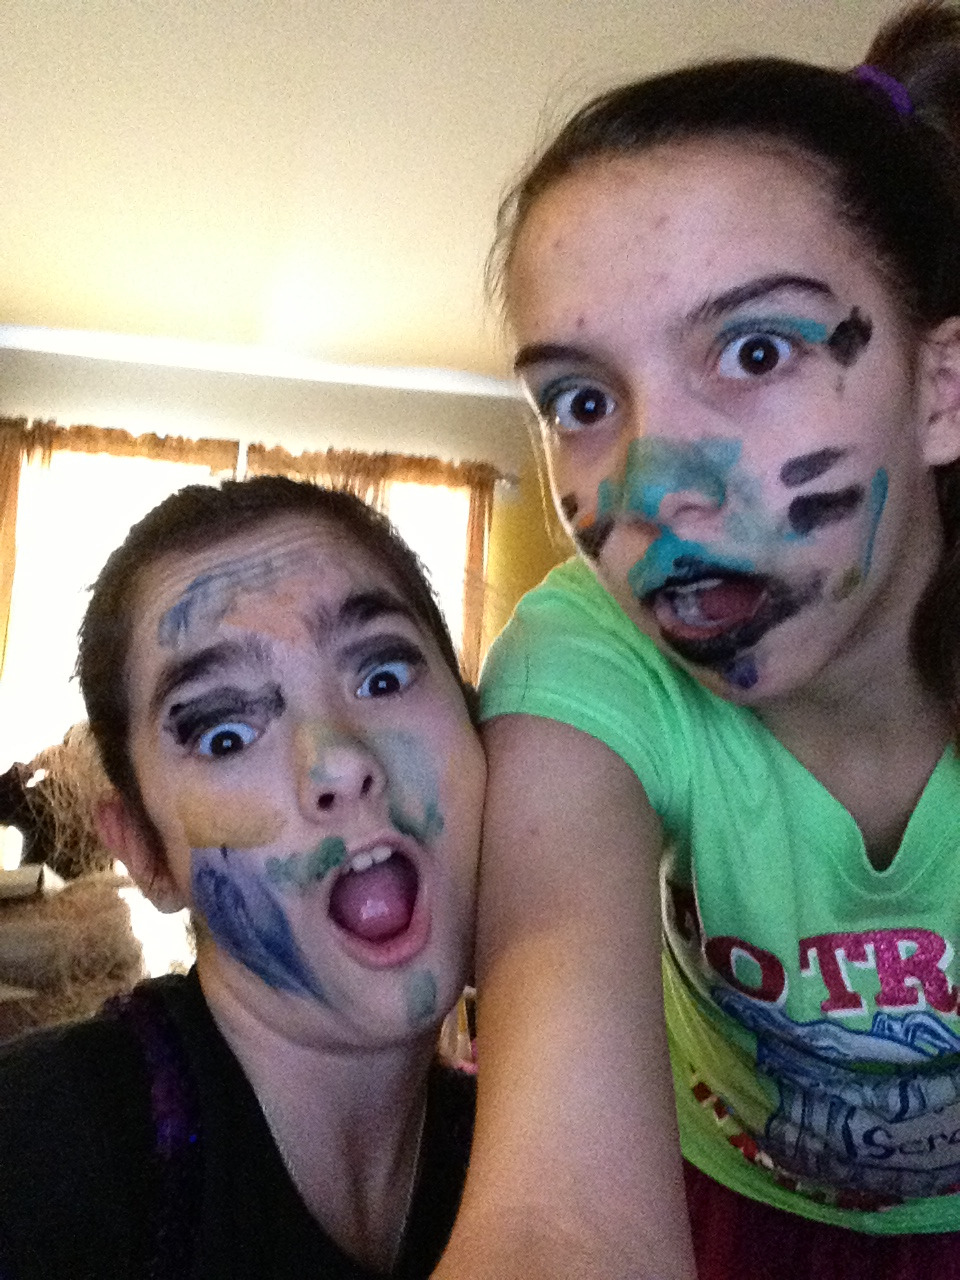 Me and my friend painted each others faces :P